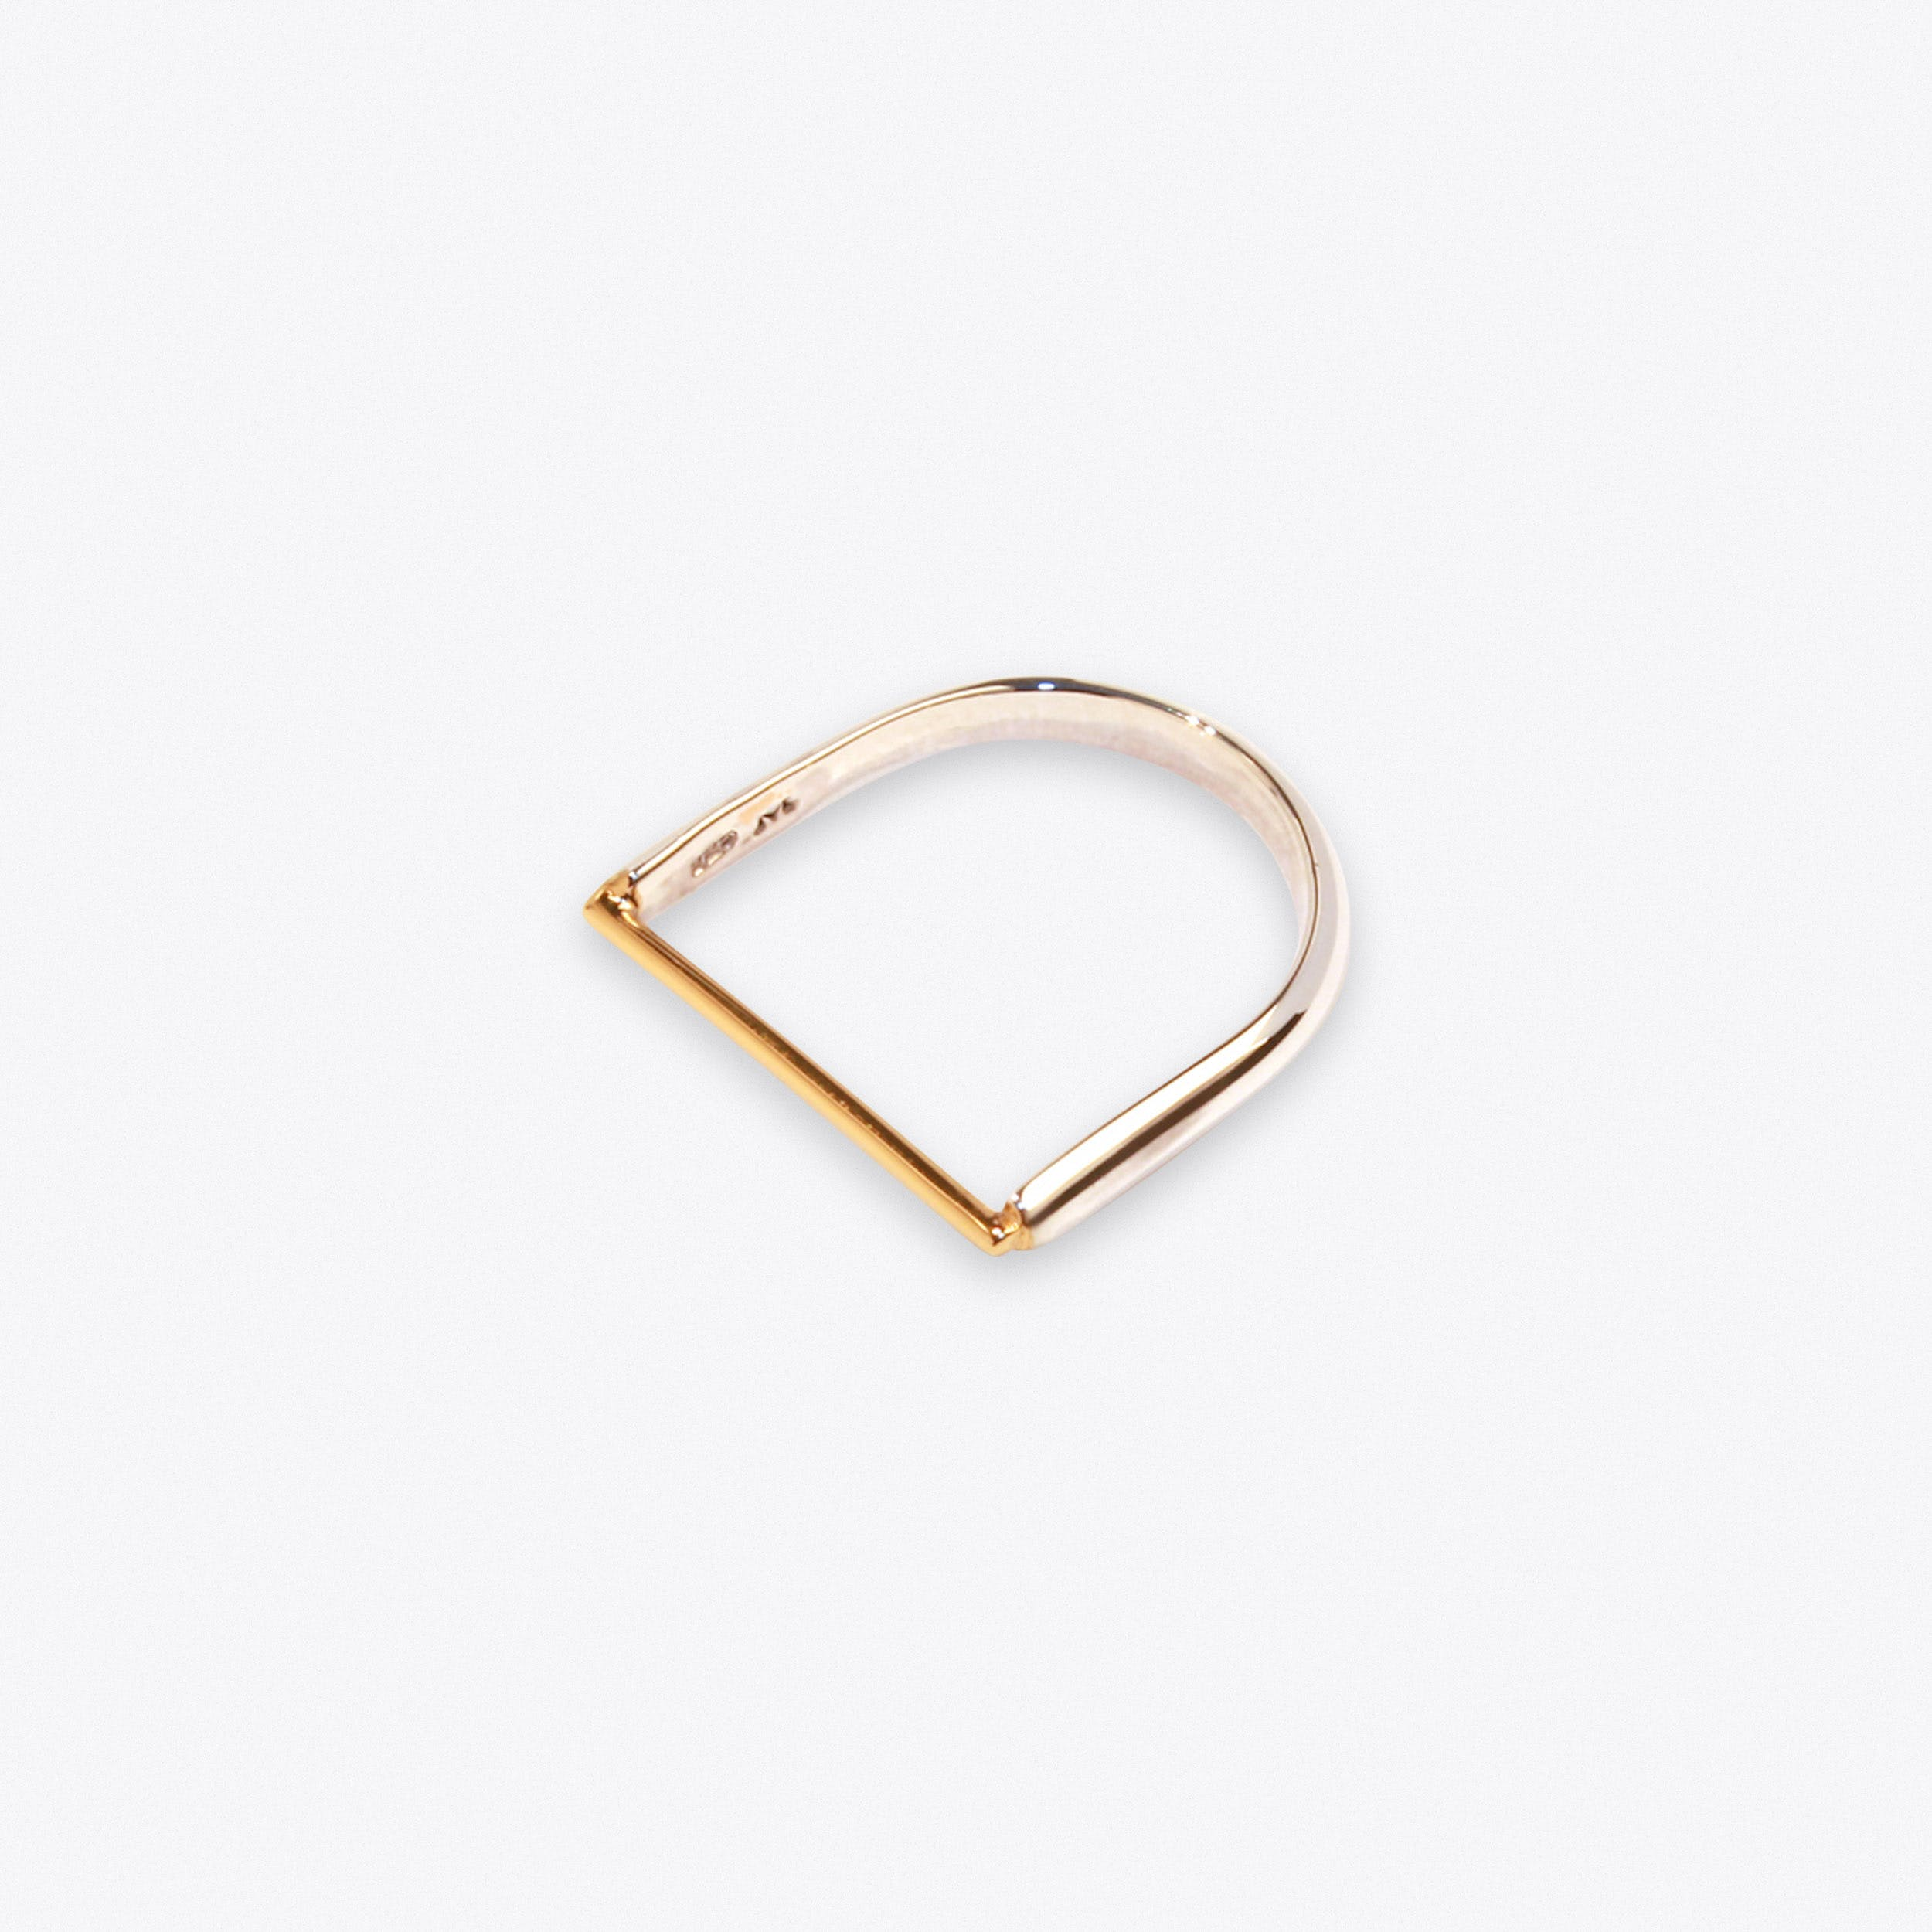 Machinist Ring in Gold